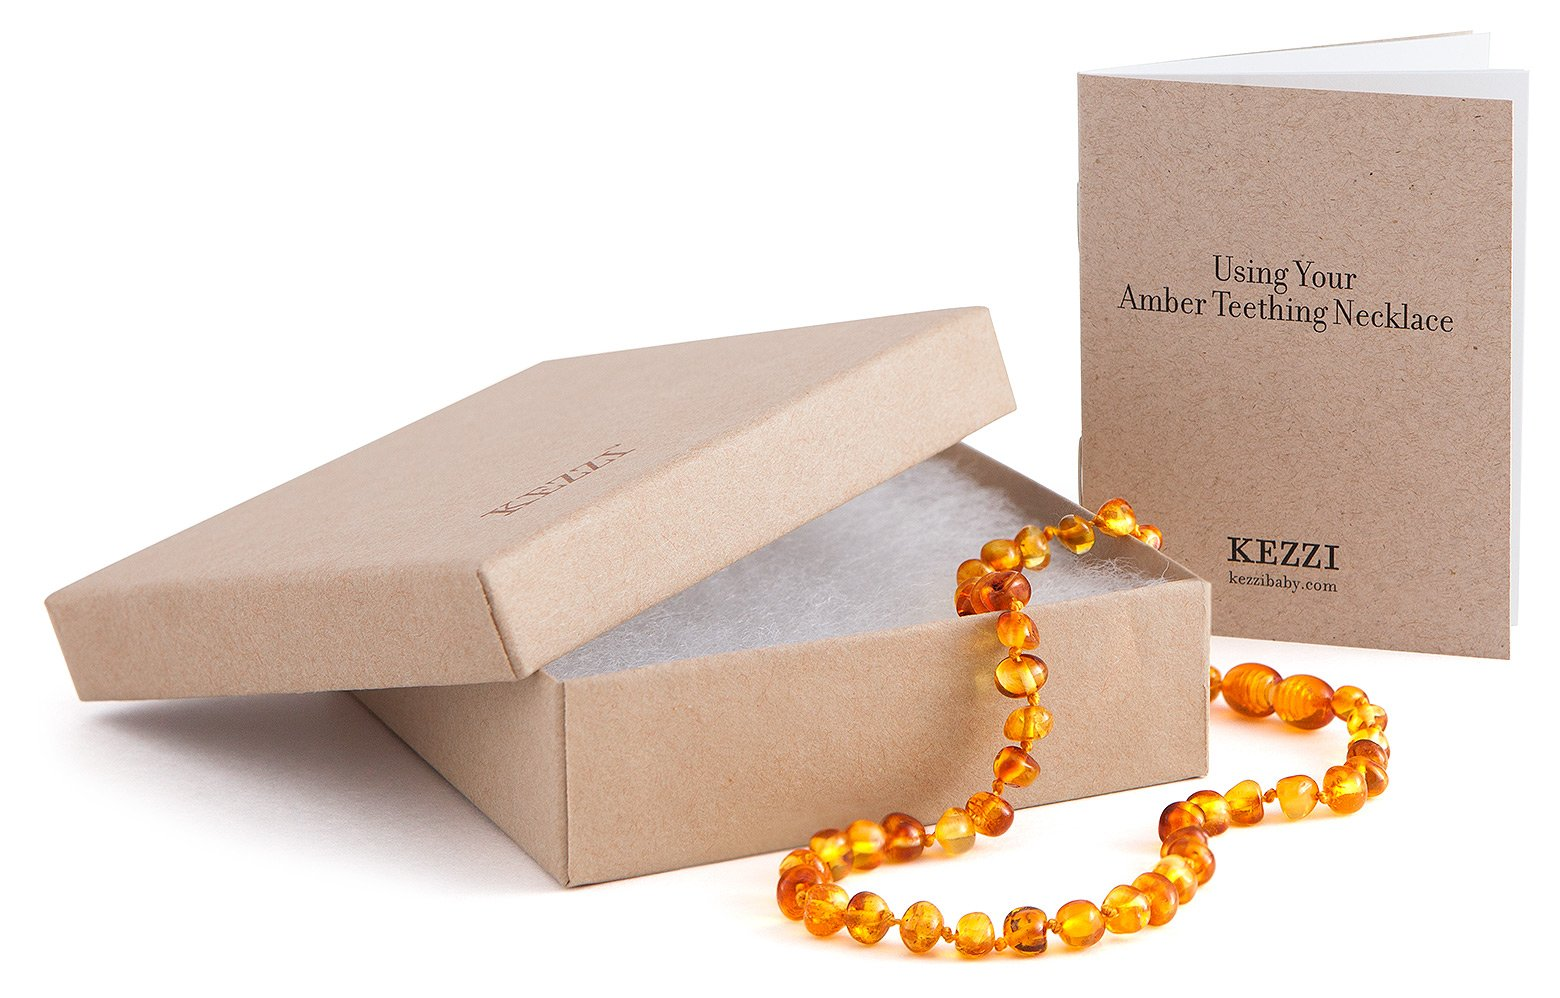 Amber Teething Necklace - Certified Authentic Baltic Amber - Amber Beads Work By Releasing Naturally Occurring Succinic Acid As an Anti-inflammatory - Also Helps Reduce Drooling - Satisfied Customer Guarantee (Honey)